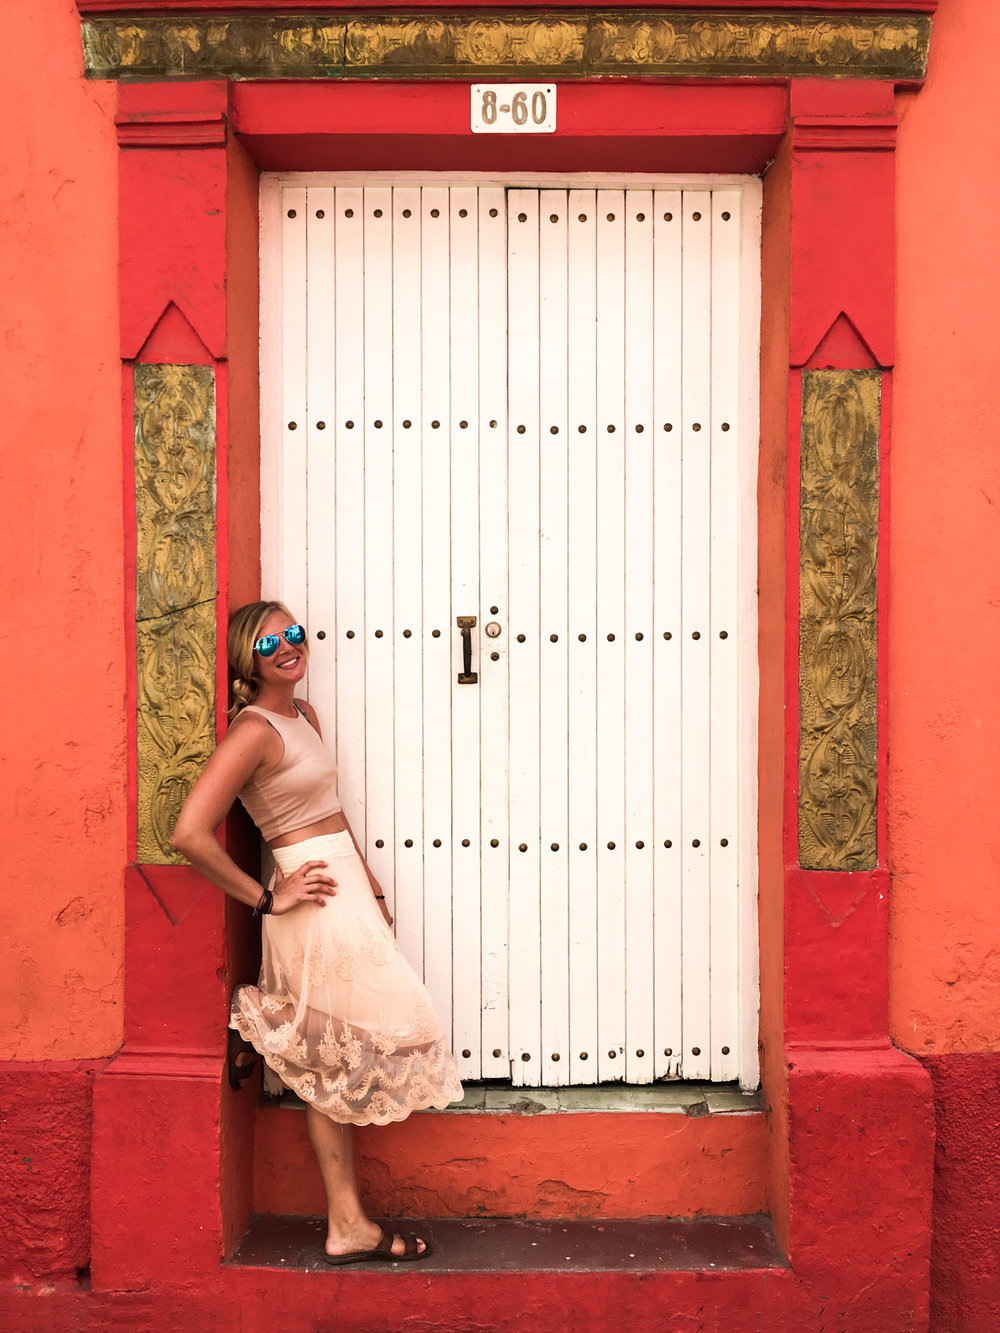 cartagena-colombia-wander-south-old-town-red-door-meg.jpg